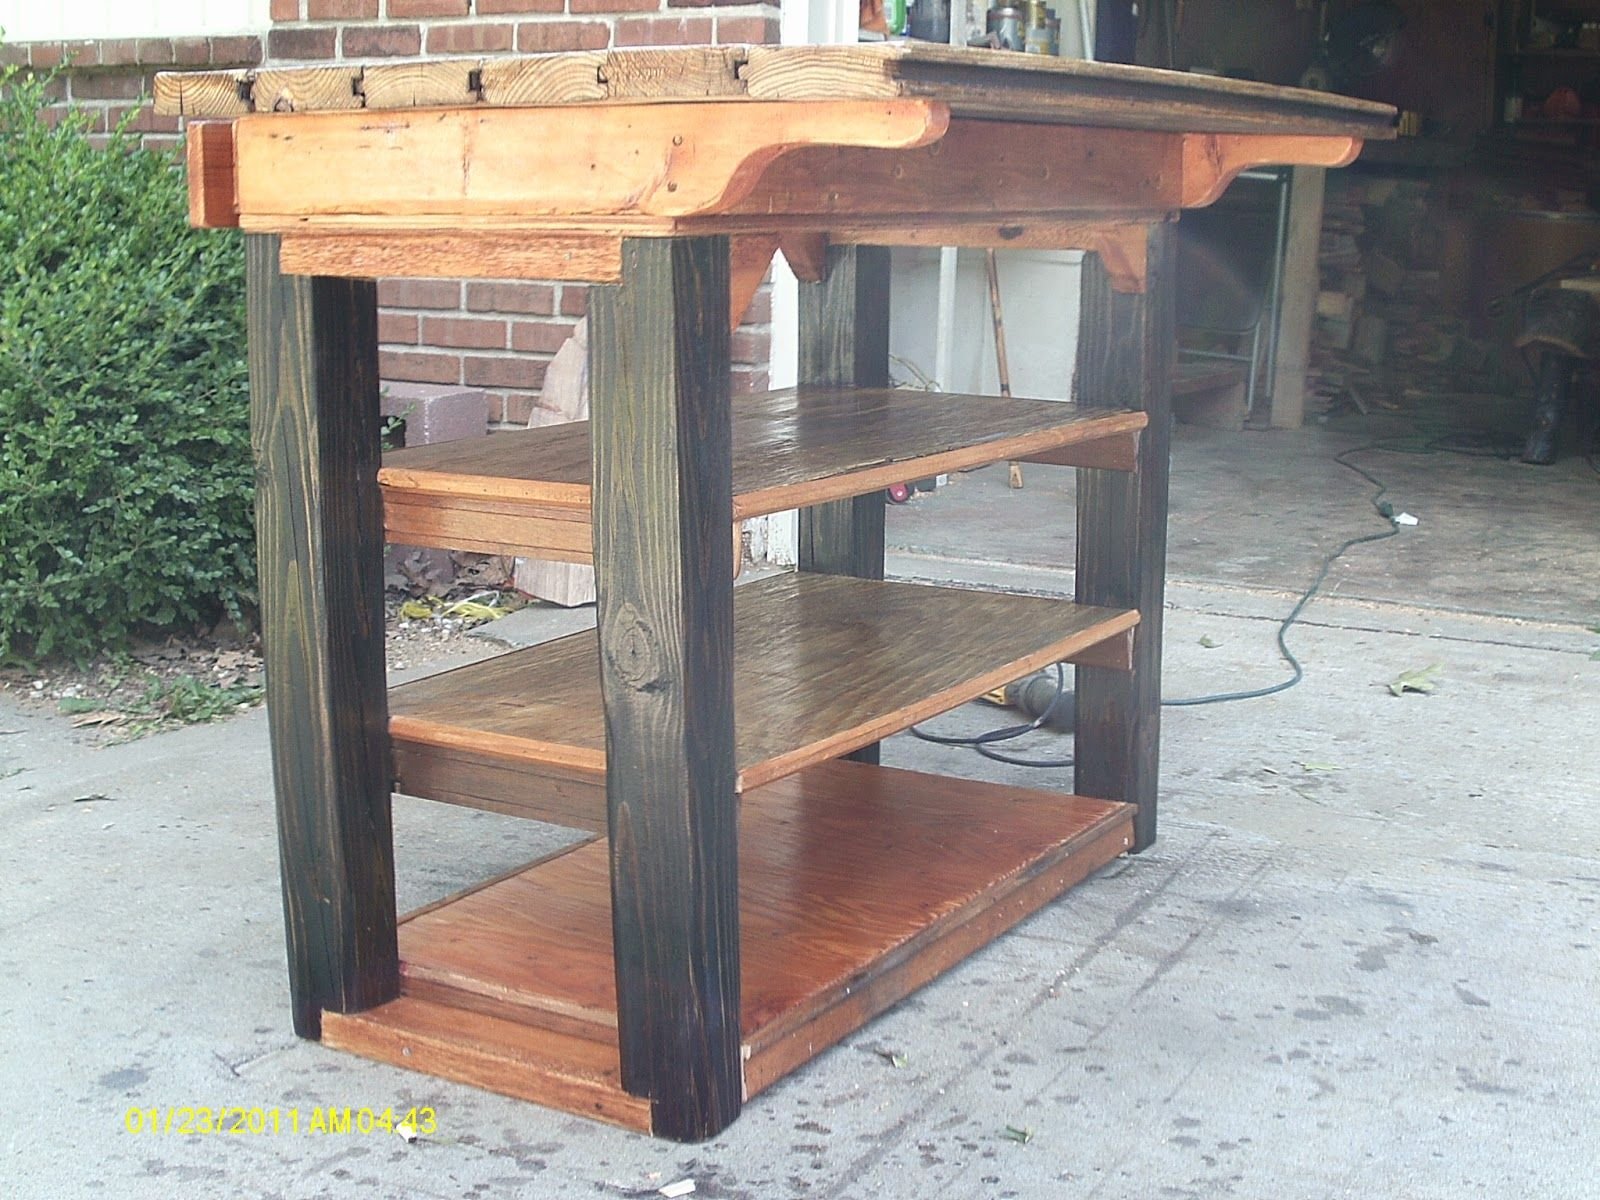 Posted Hand Made Log Furniture Handmade Kitchen Island For Sale Waterford  City From